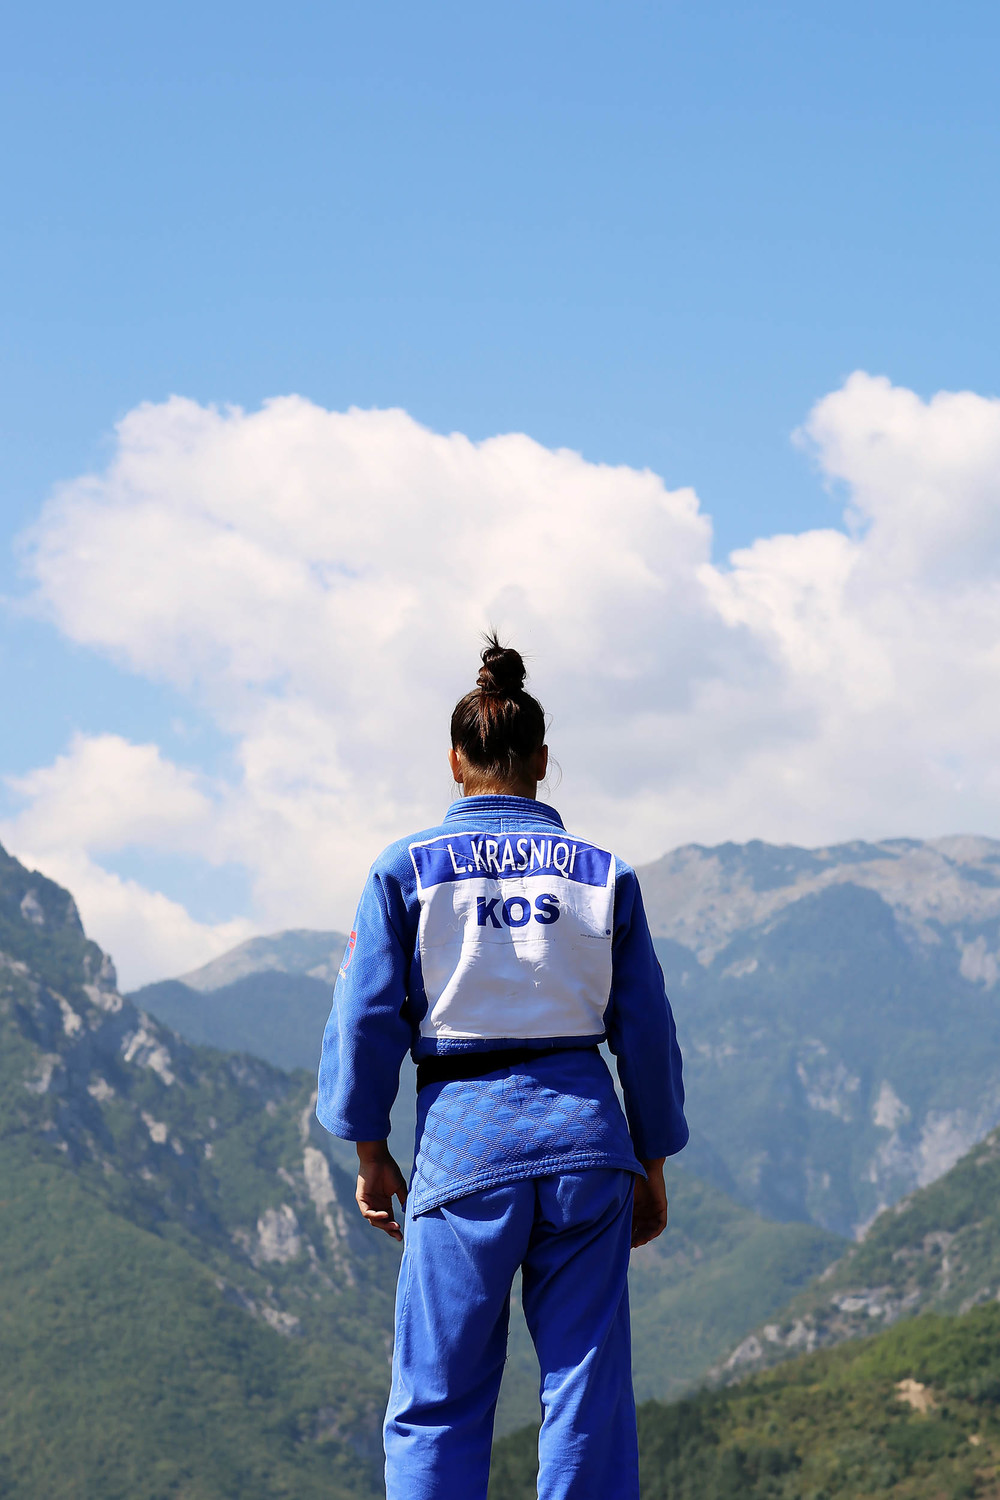 Kosovo Olympic Team